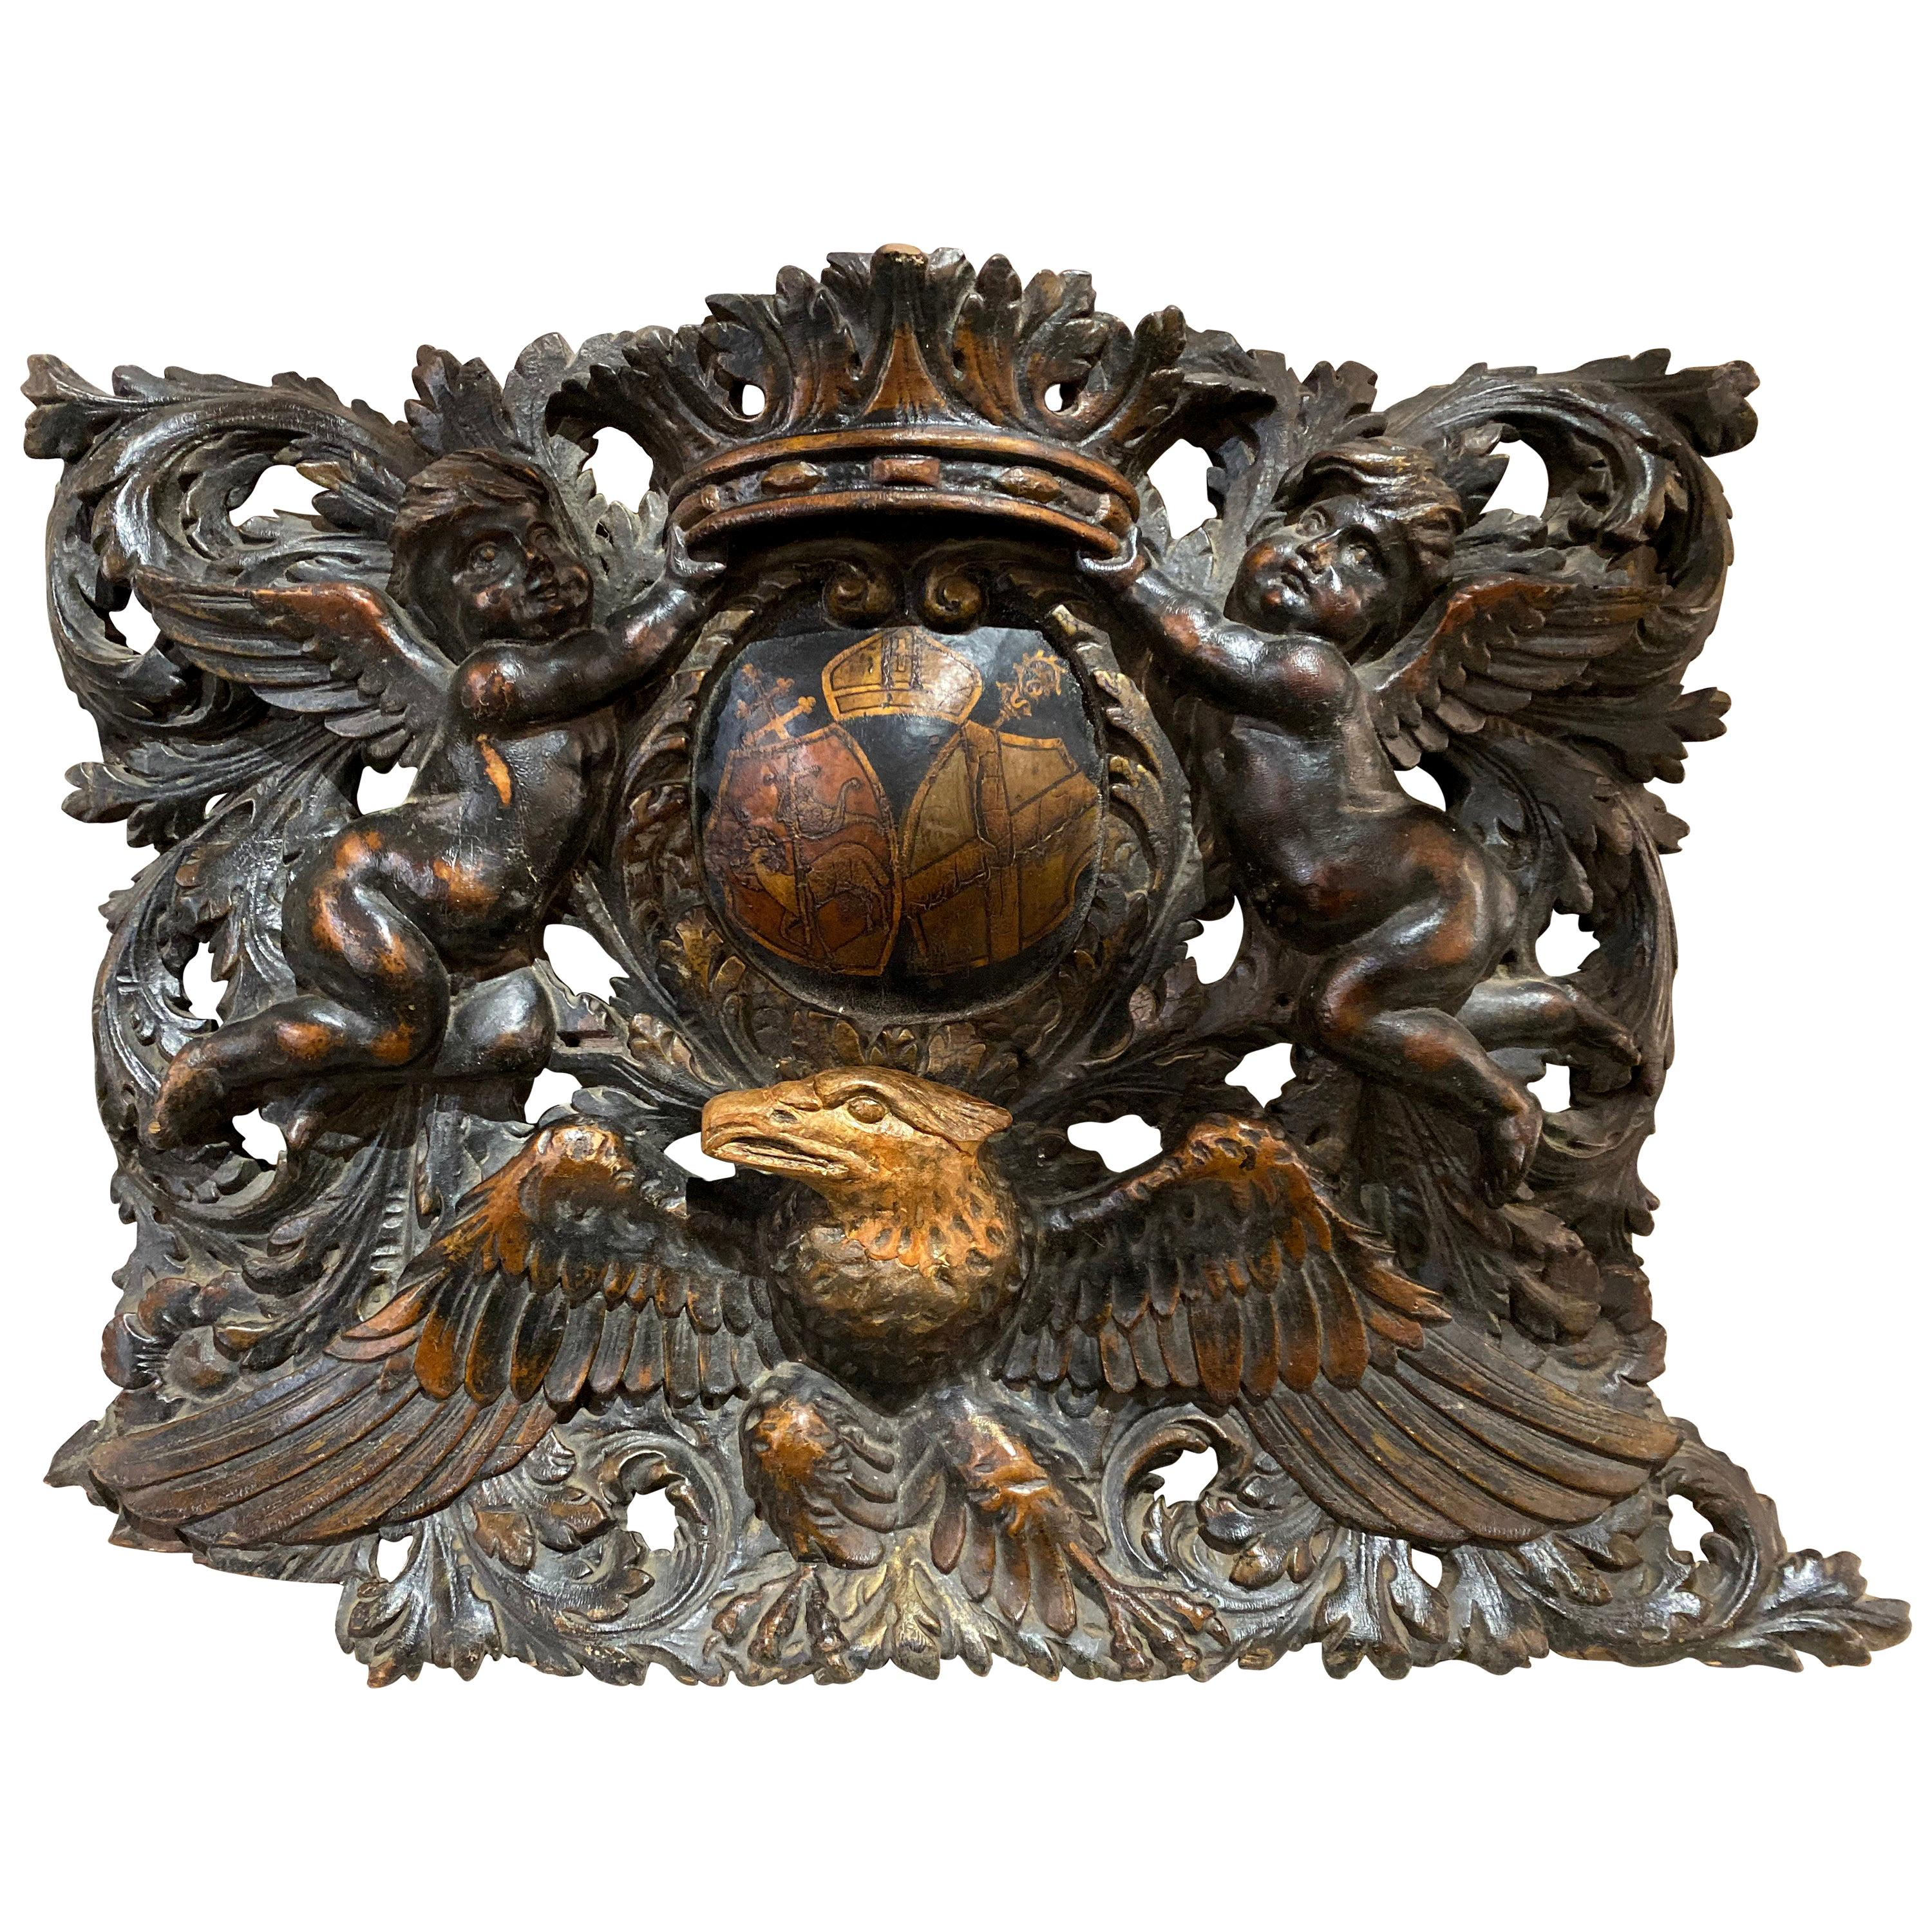 Antique Wooden Crest with Eagle